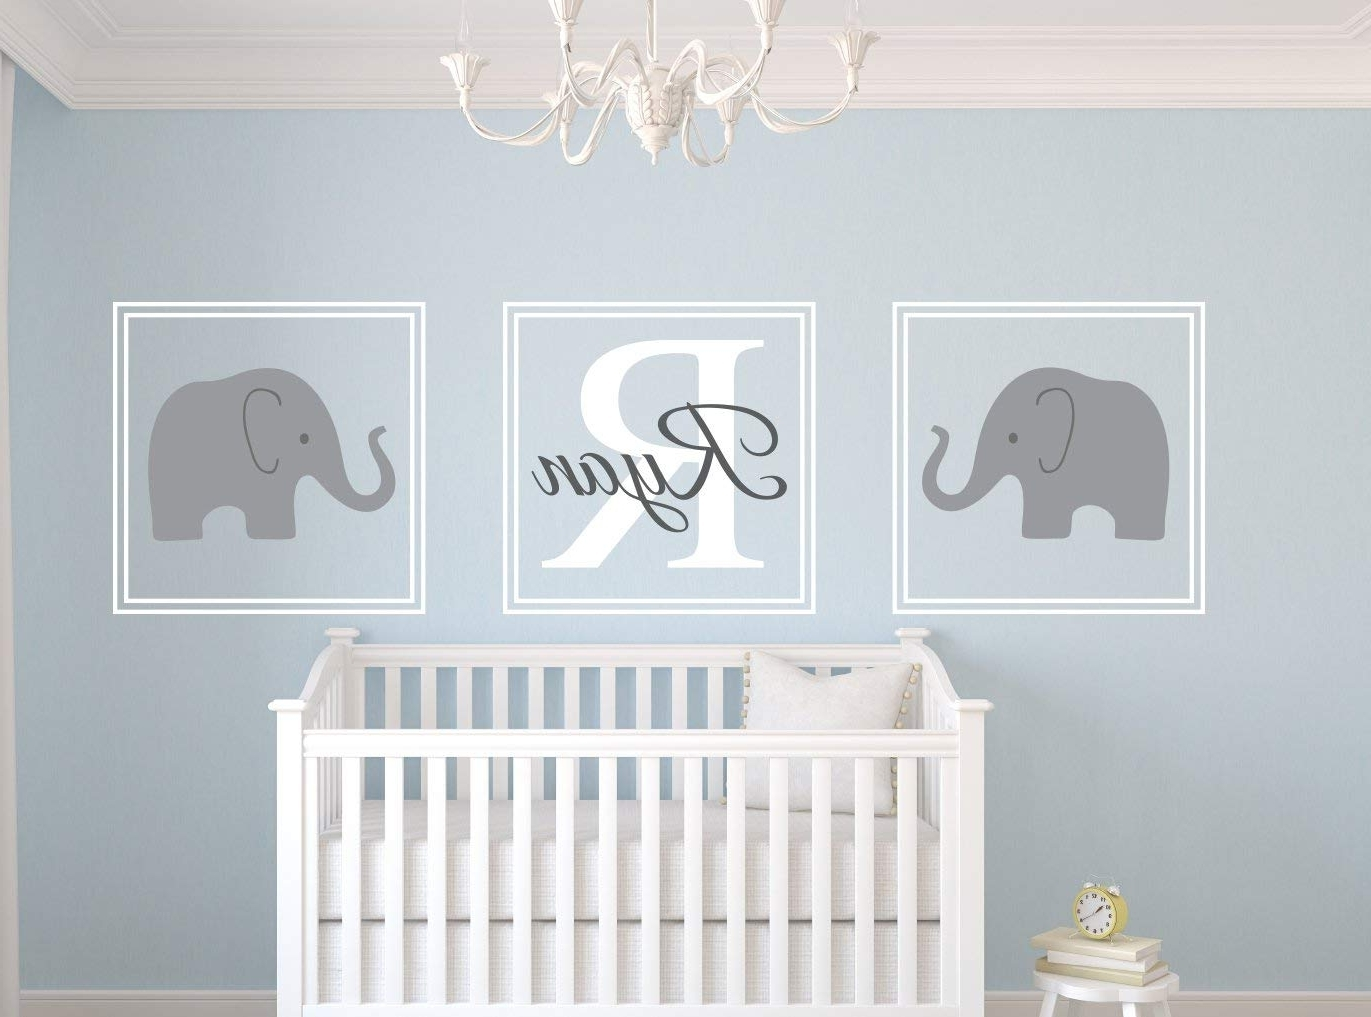 Favorite Name Wall Art For Amazon : Elephant Name Wall Decal Set Nursery Wall Decor : Baby (View 14 of 15)